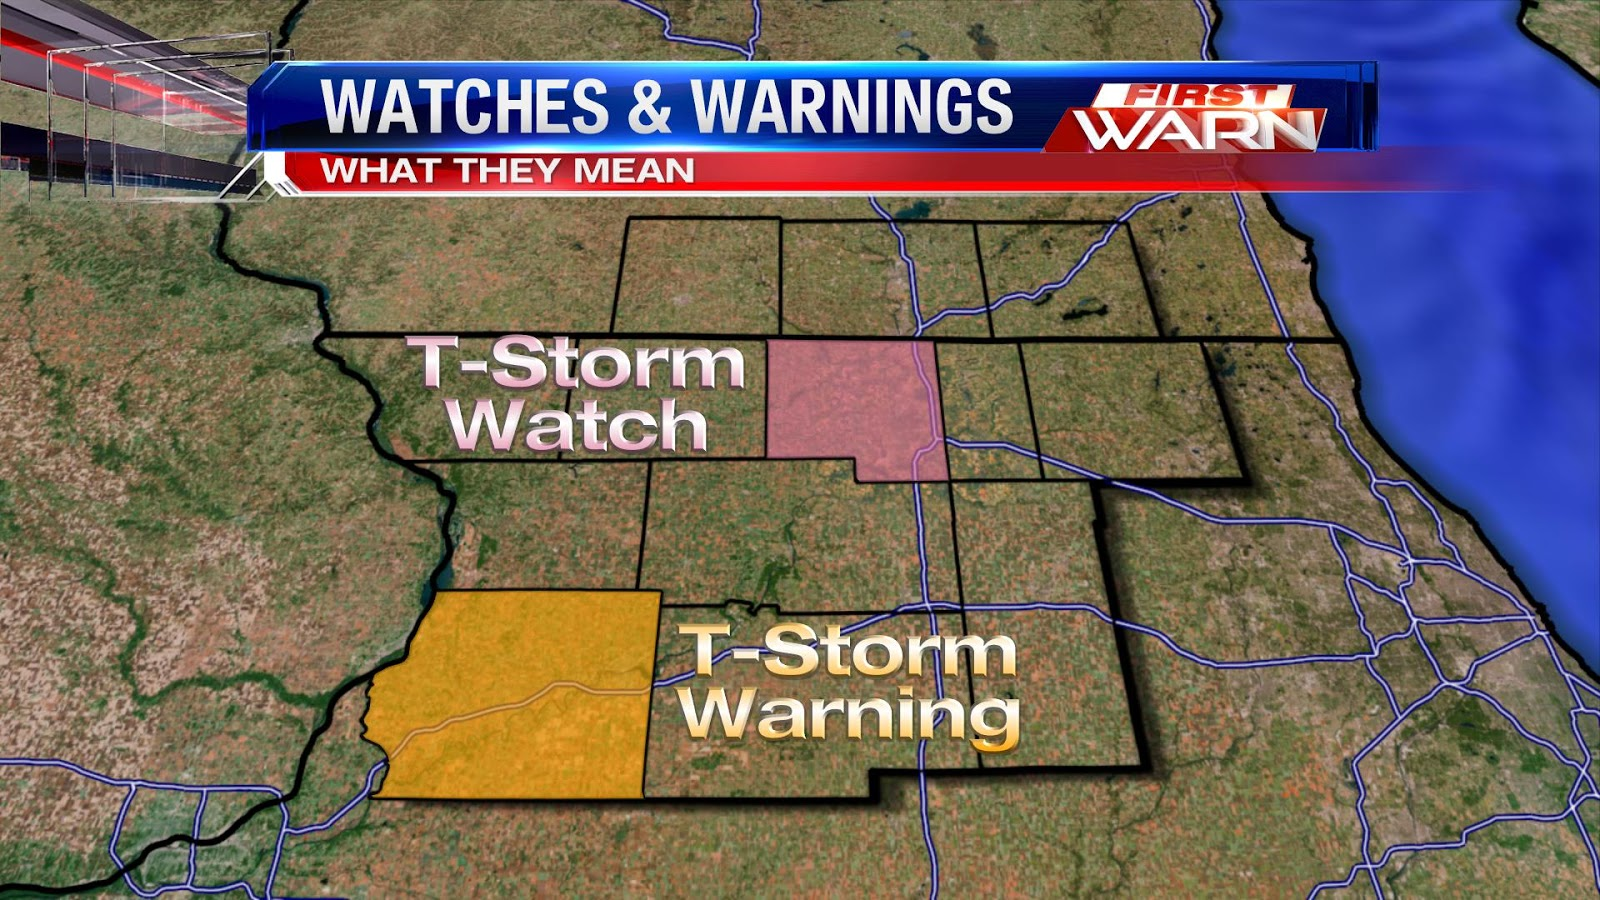 HD Decor Images » First Warn Weather Team  Severe Weather Prep Week  Watches   Warnings One of the most basic questions we get is   What s the difference between a  watch and a warning   It s a great question  because they mean very  different